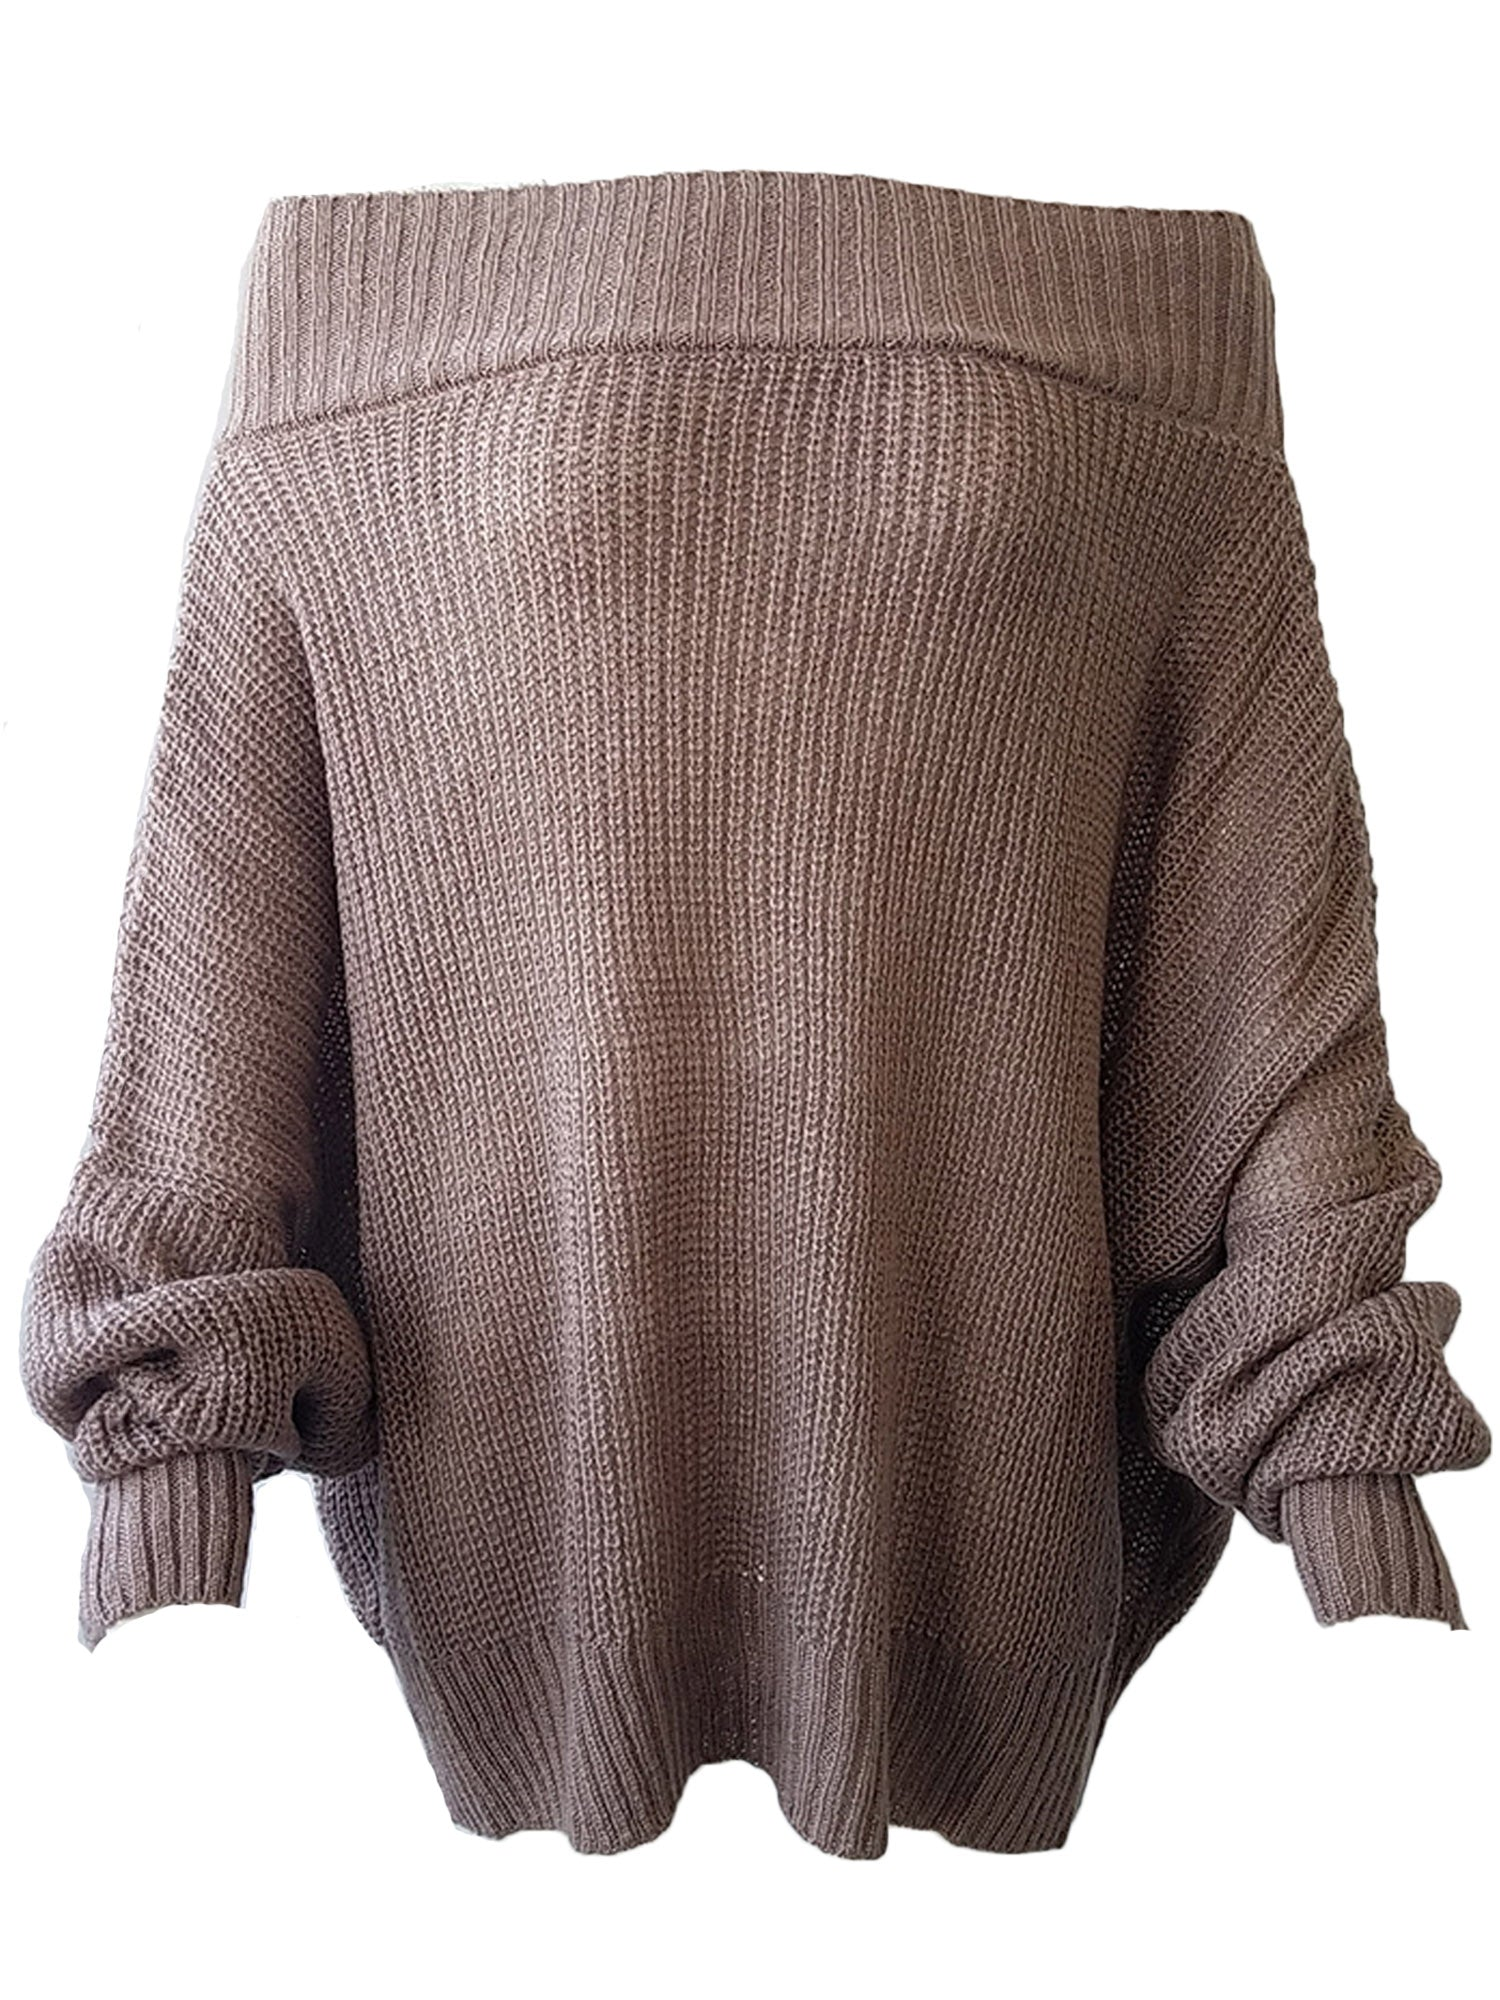 'Nana' Off The Shoulder Loose Knit Slouchy Sweater